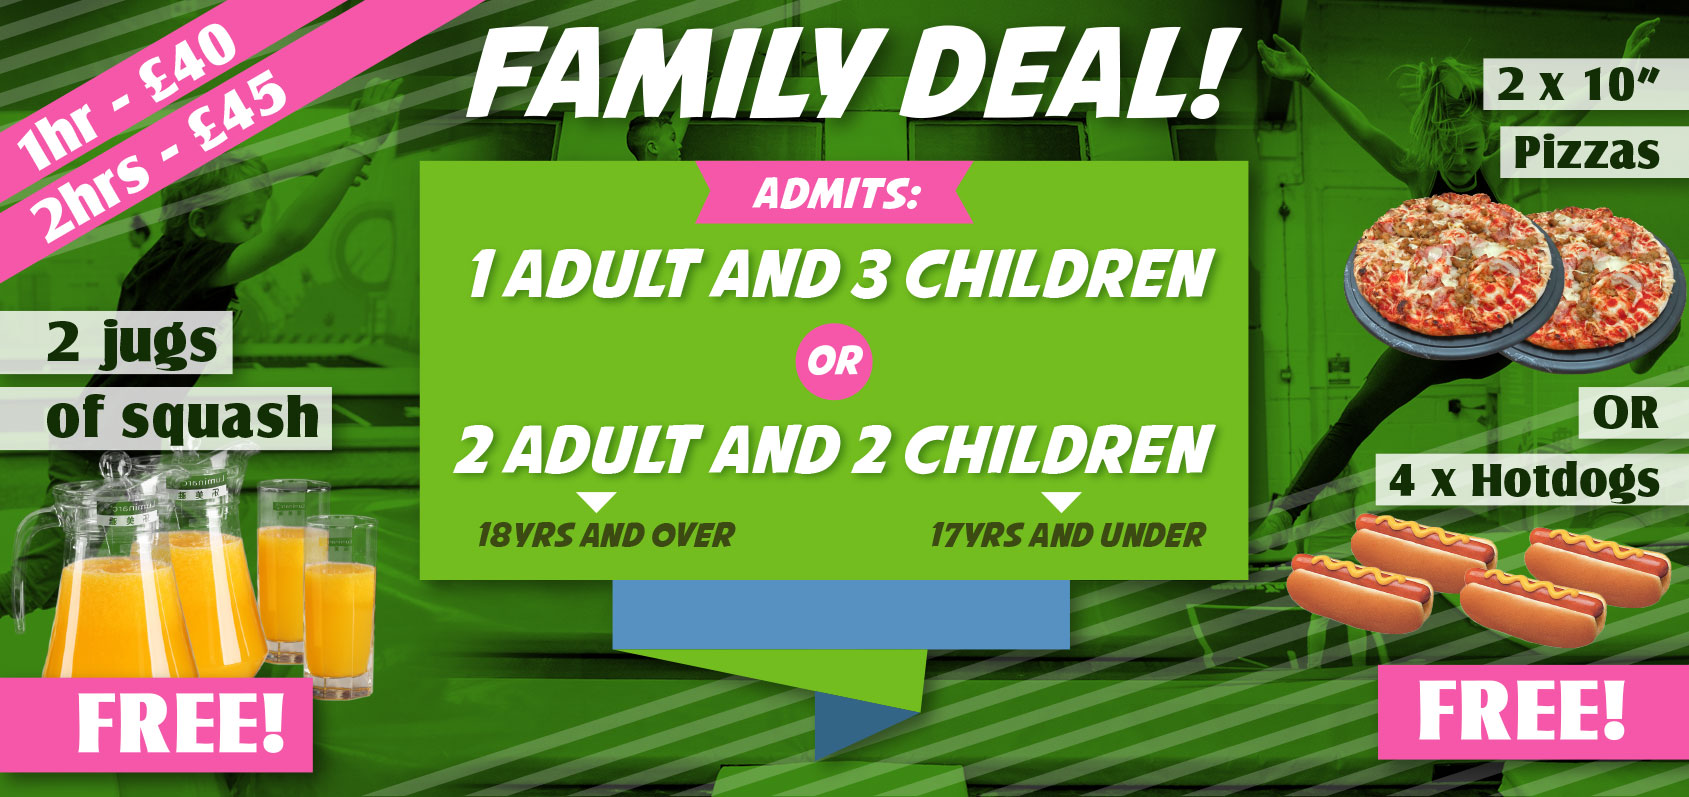 Fam-deal-v3-header.jpg